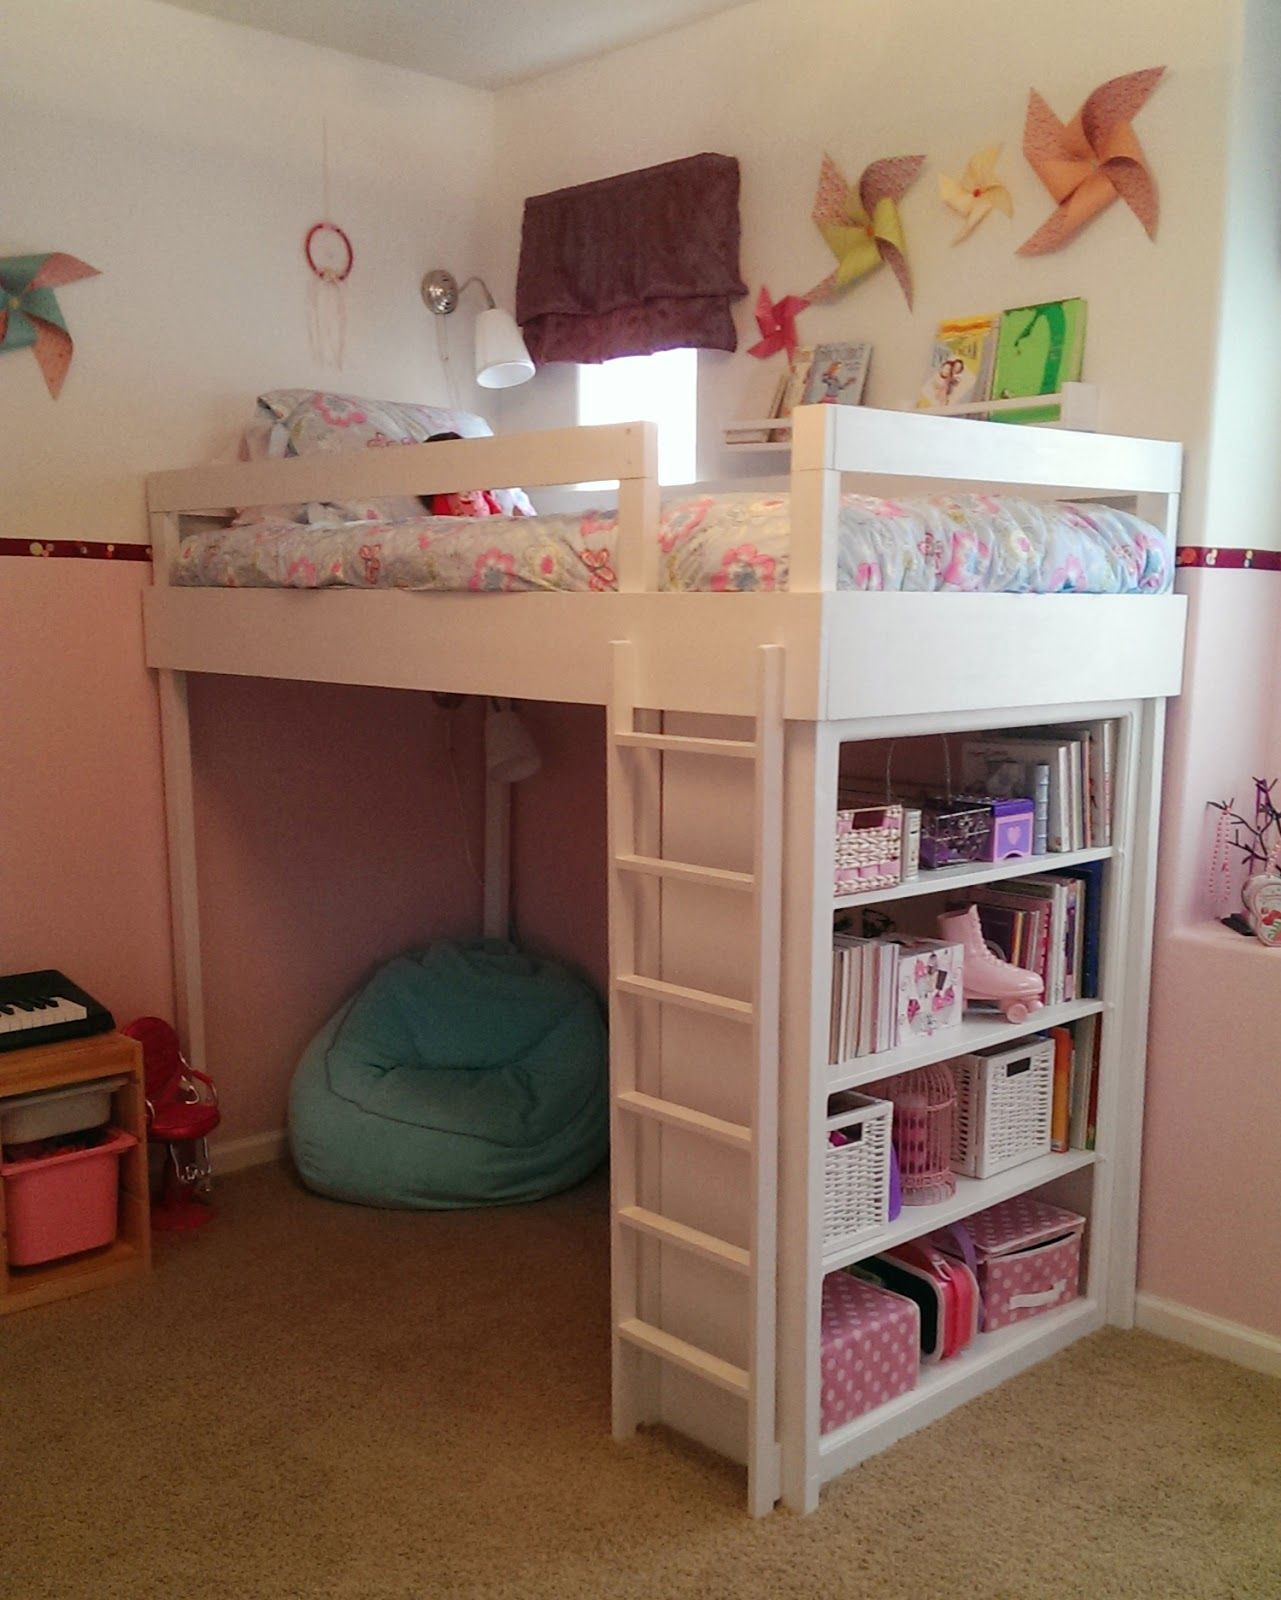 Lovely Neighbors Diy Loft Bed For Little Girl S Room Diy Loft Bed Girls Loft Bed Loft Bed